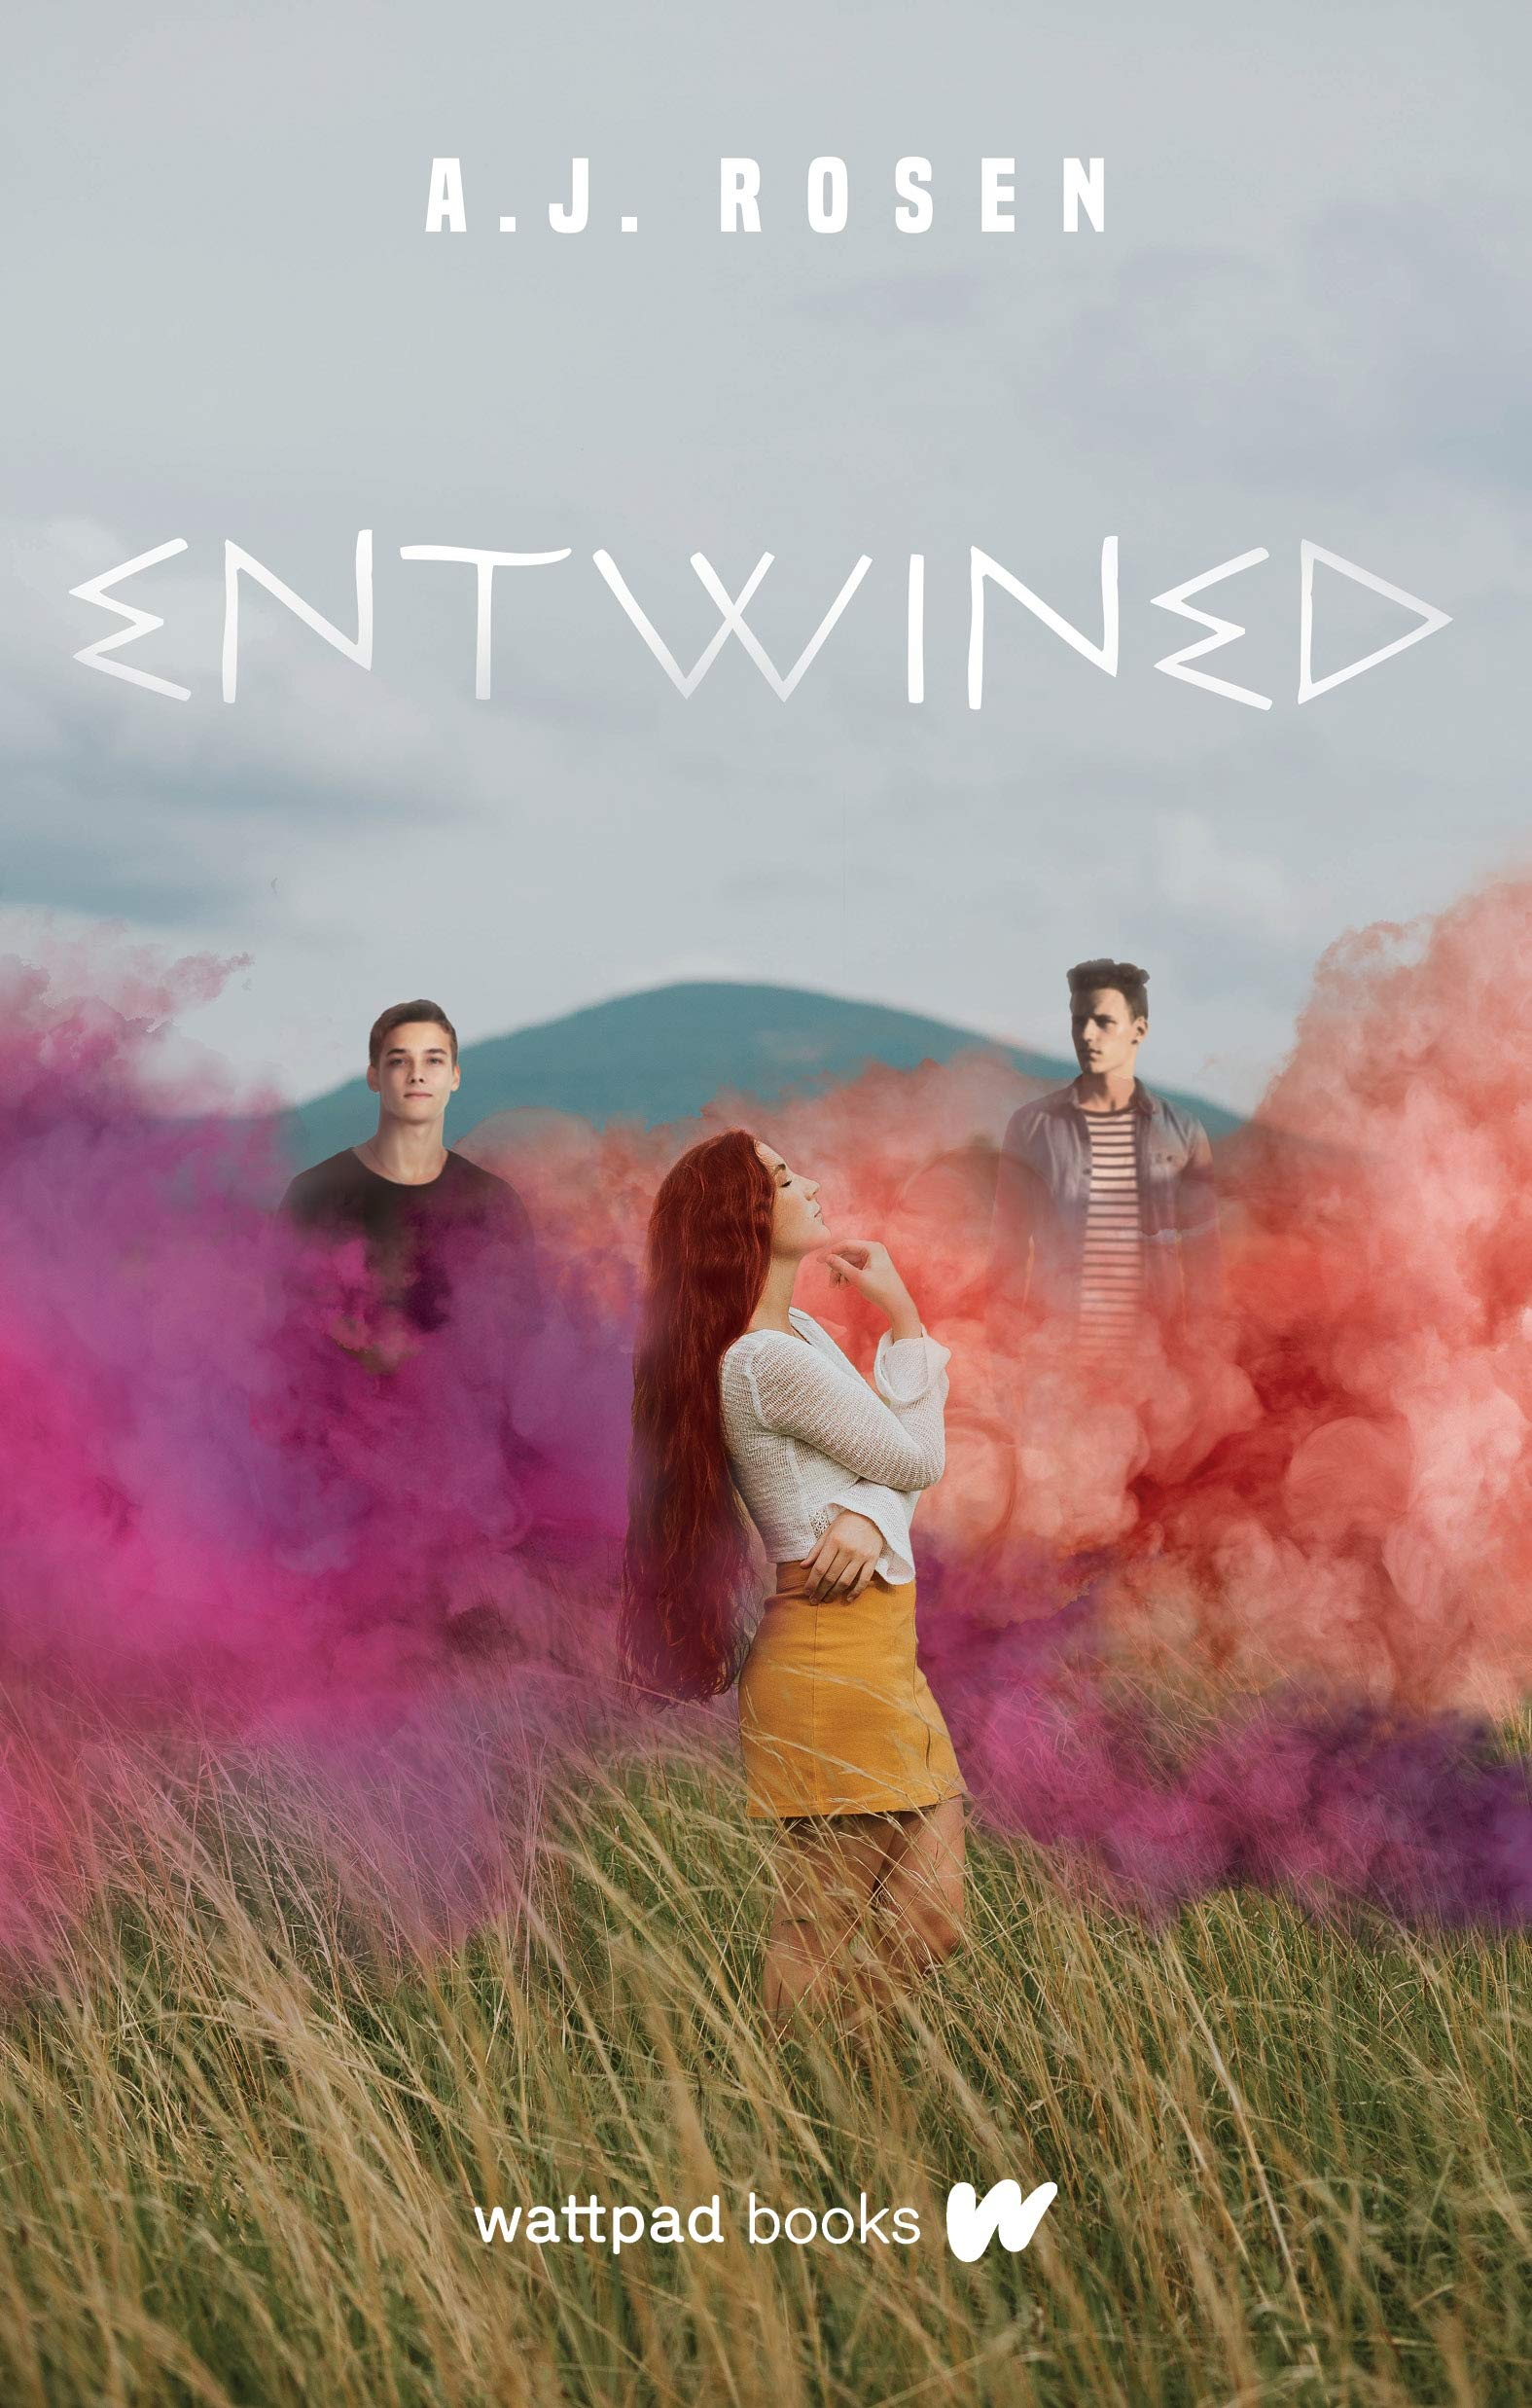 Amazon.com: Entwined (9781989365120): Rosen, A.J.: Books